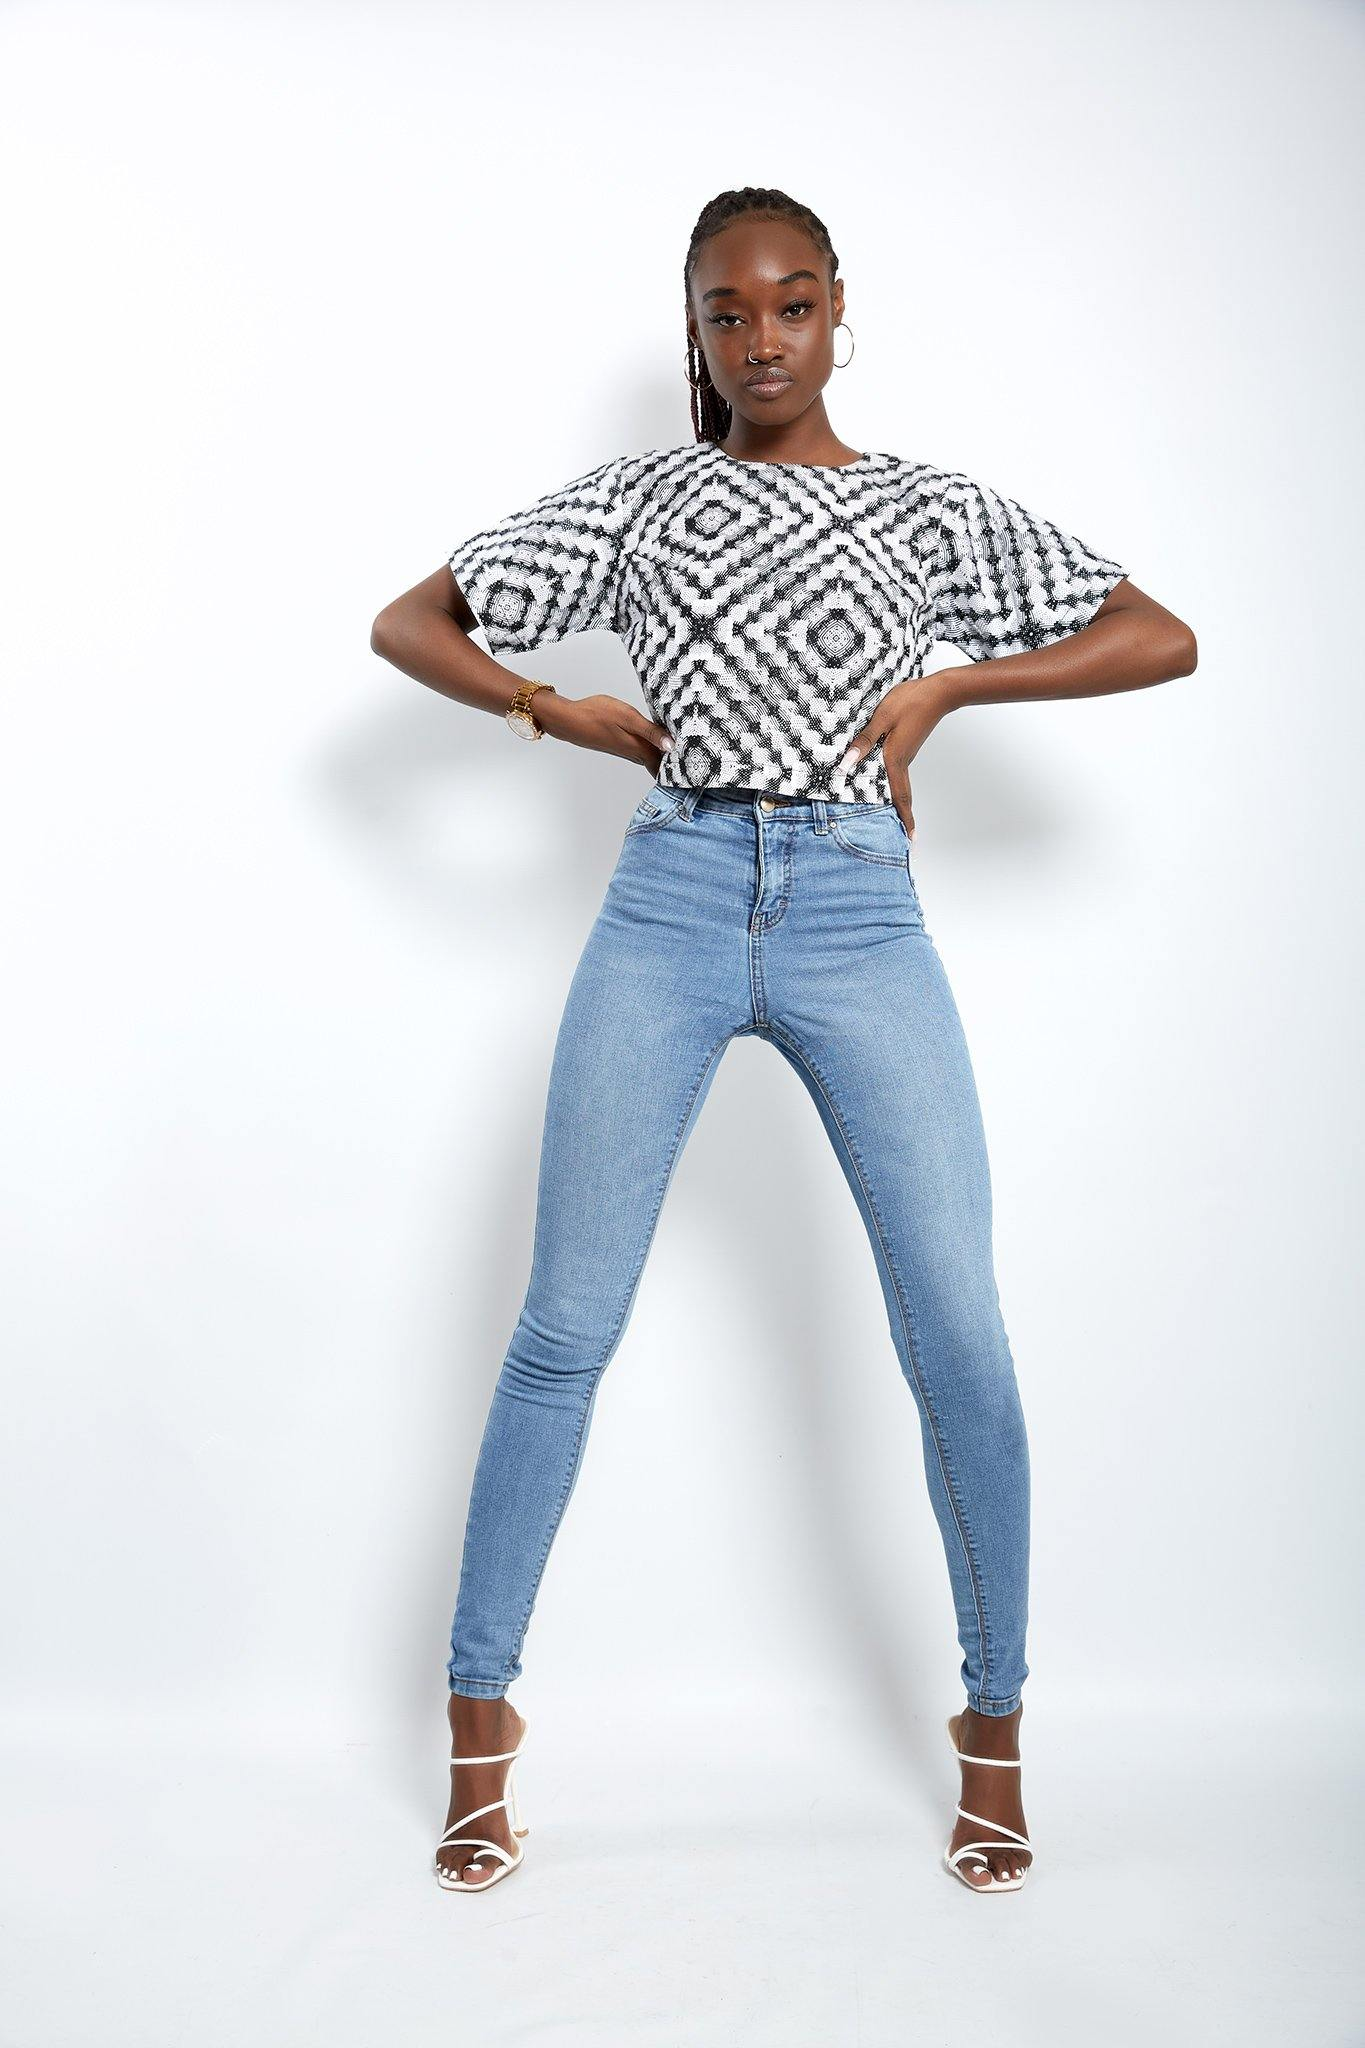 WAA- Dakar African Print Cropped Top - waafashion